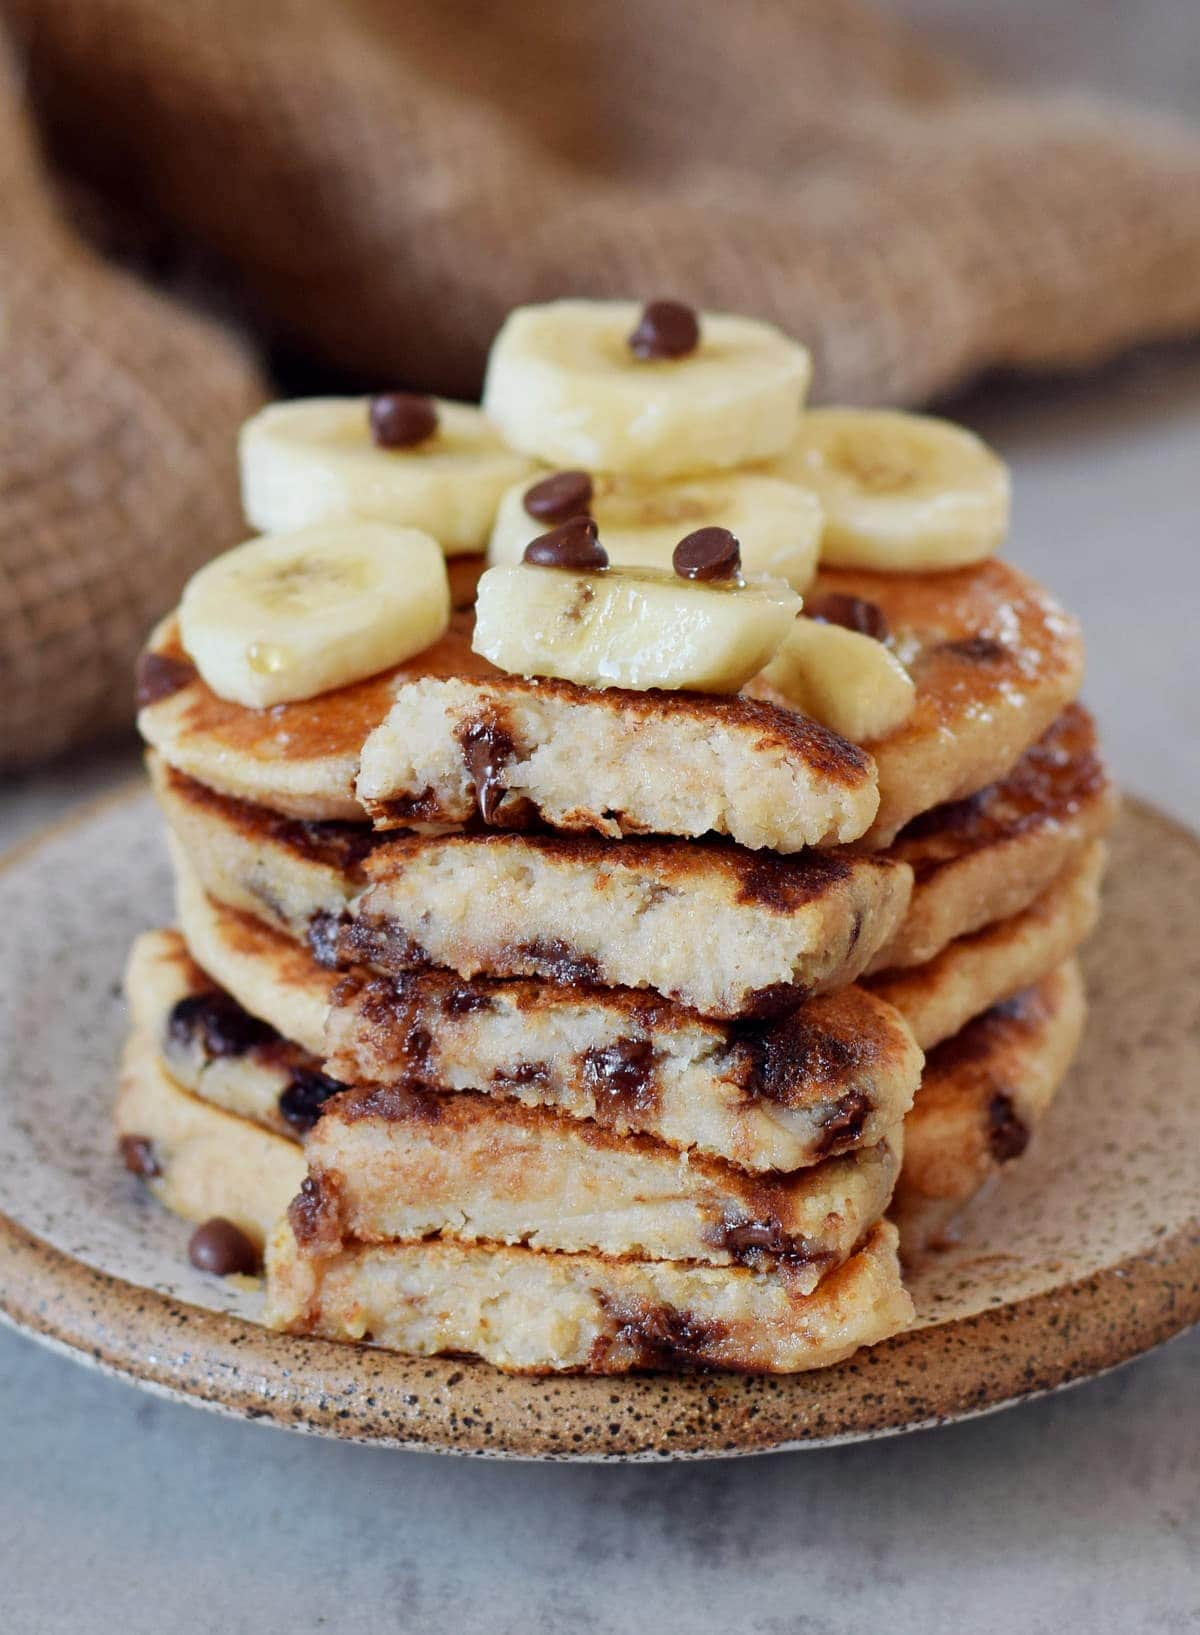 eggless pancake stack with chocolate and banana slices